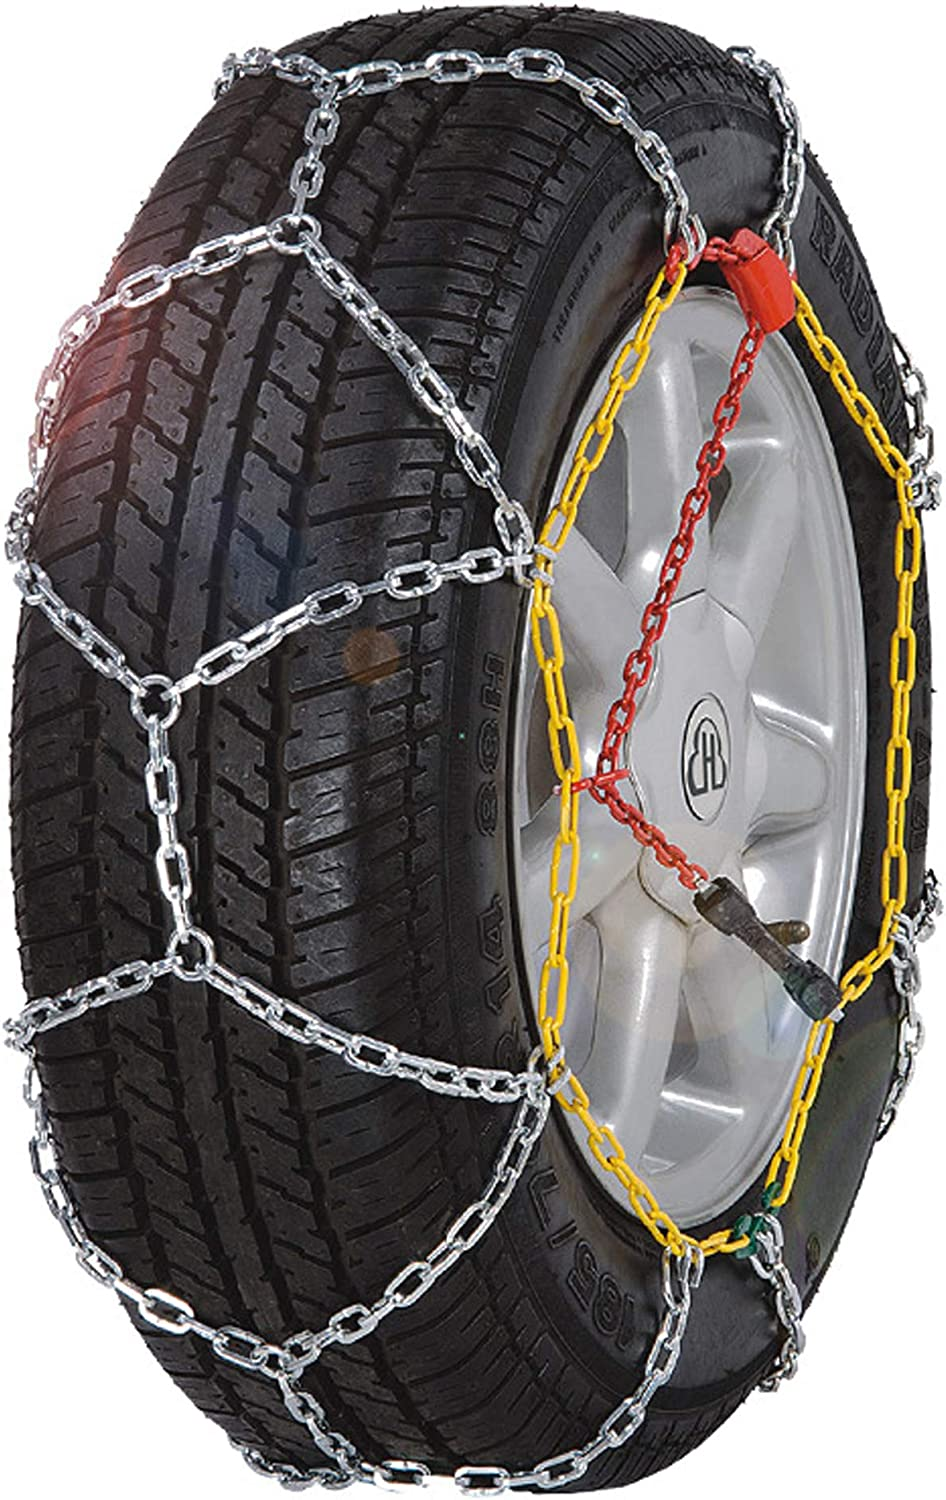 BaiYouDa Alloy Snow Chain Wear Resistant Tire Chain for Cars KN100 Minivans-Set of 2 SUVs